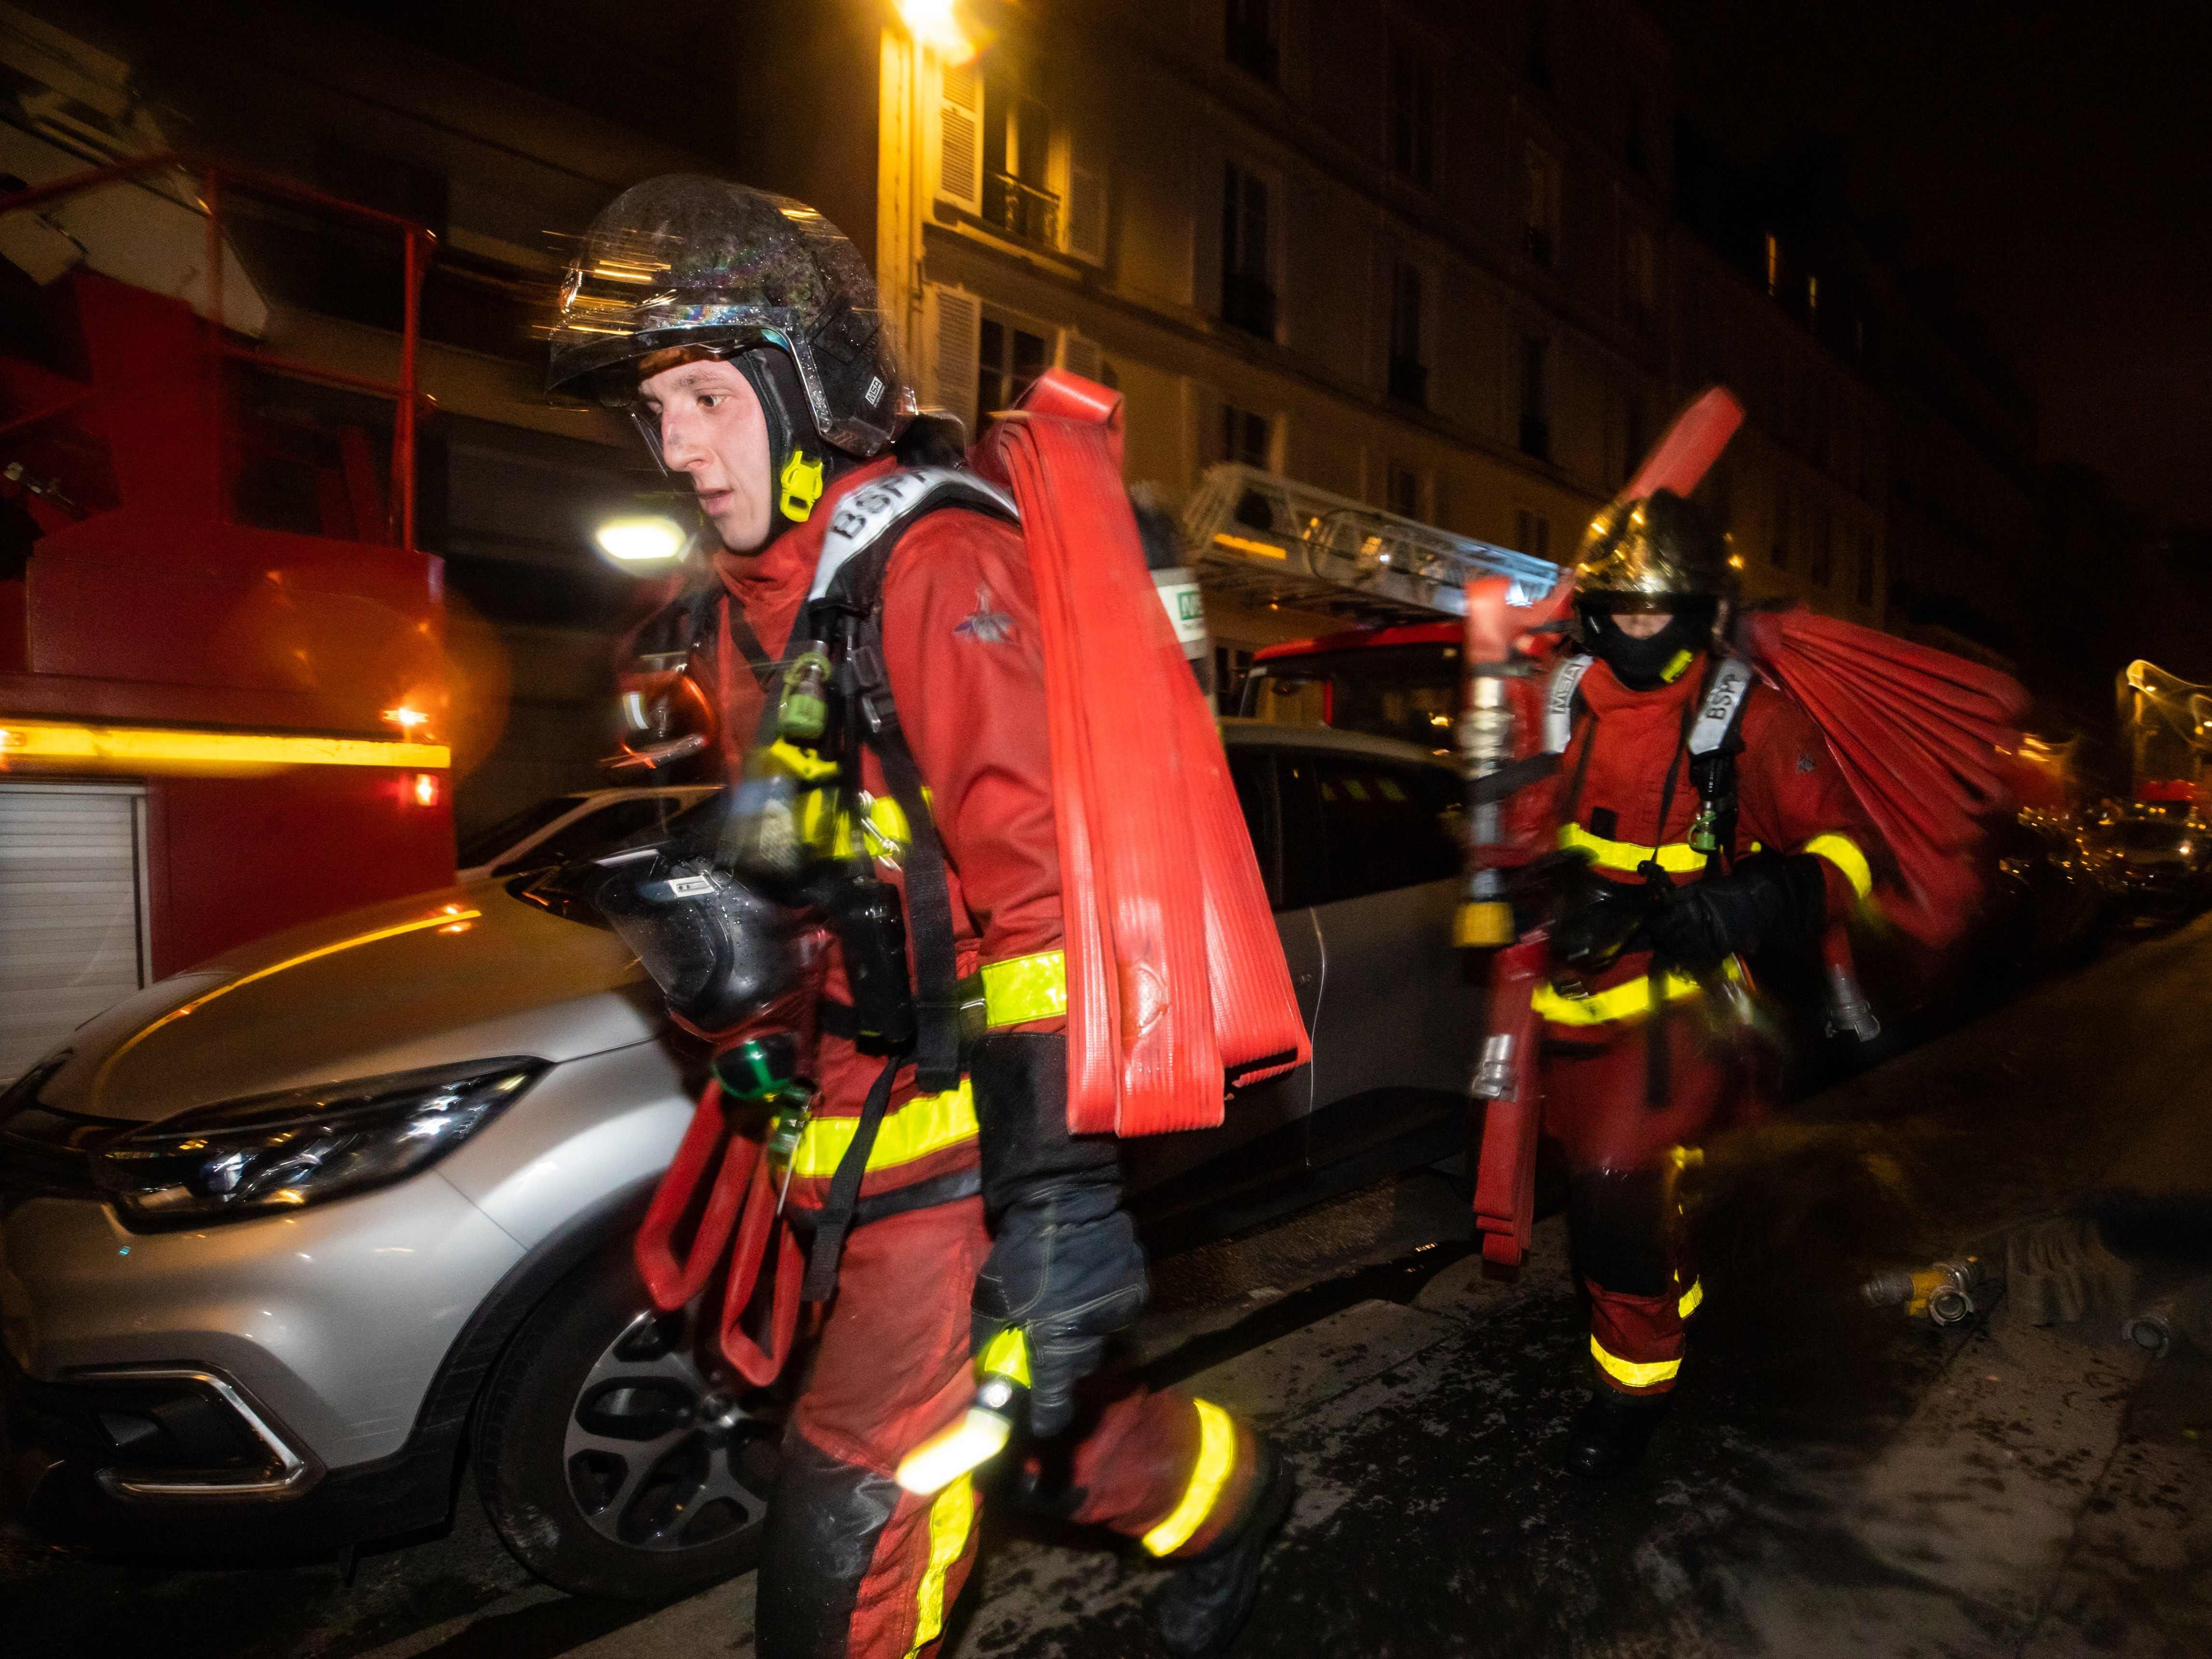 This handout picture taken and released by the Paris firefighters brigade shows firemen carrying gear as a fire burns in a building in Erlanger street in the 16th arrondissement in Paris.